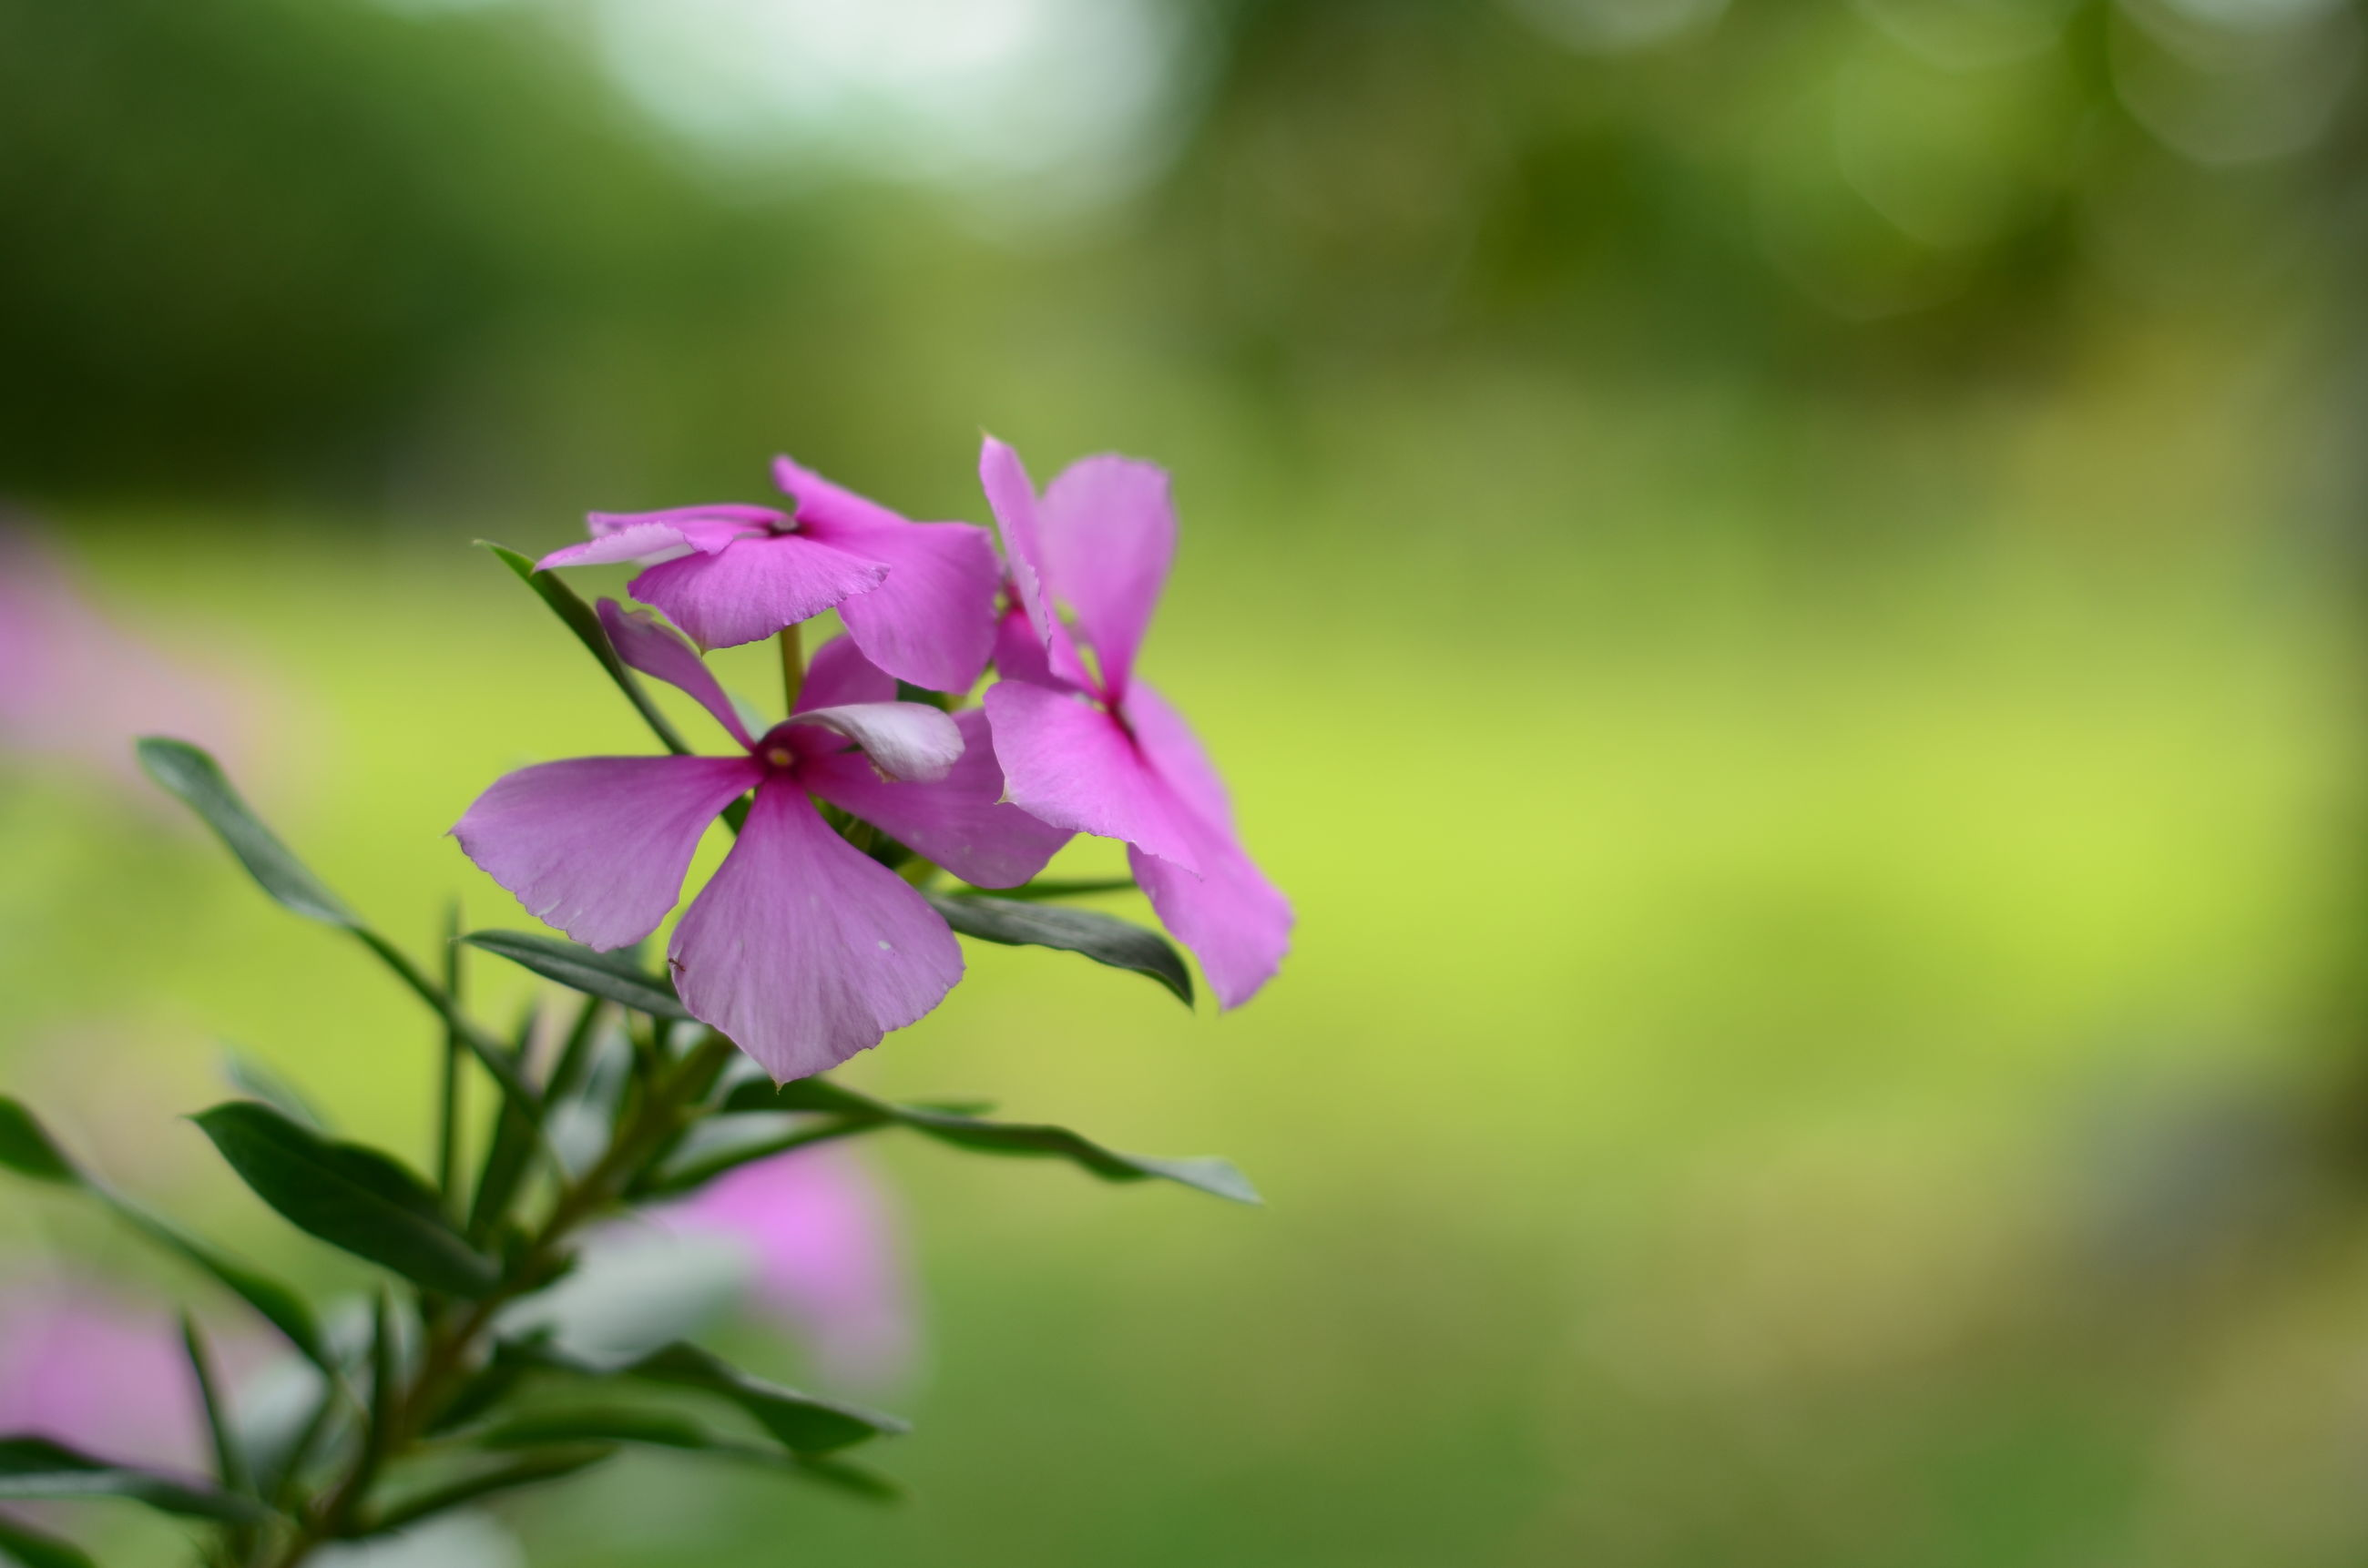 flower, freshness, petal, fragility, growth, focus on foreground, beauty in nature, flower head, close-up, nature, blooming, purple, pink color, plant, selective focus, stem, in bloom, bud, blossom, day